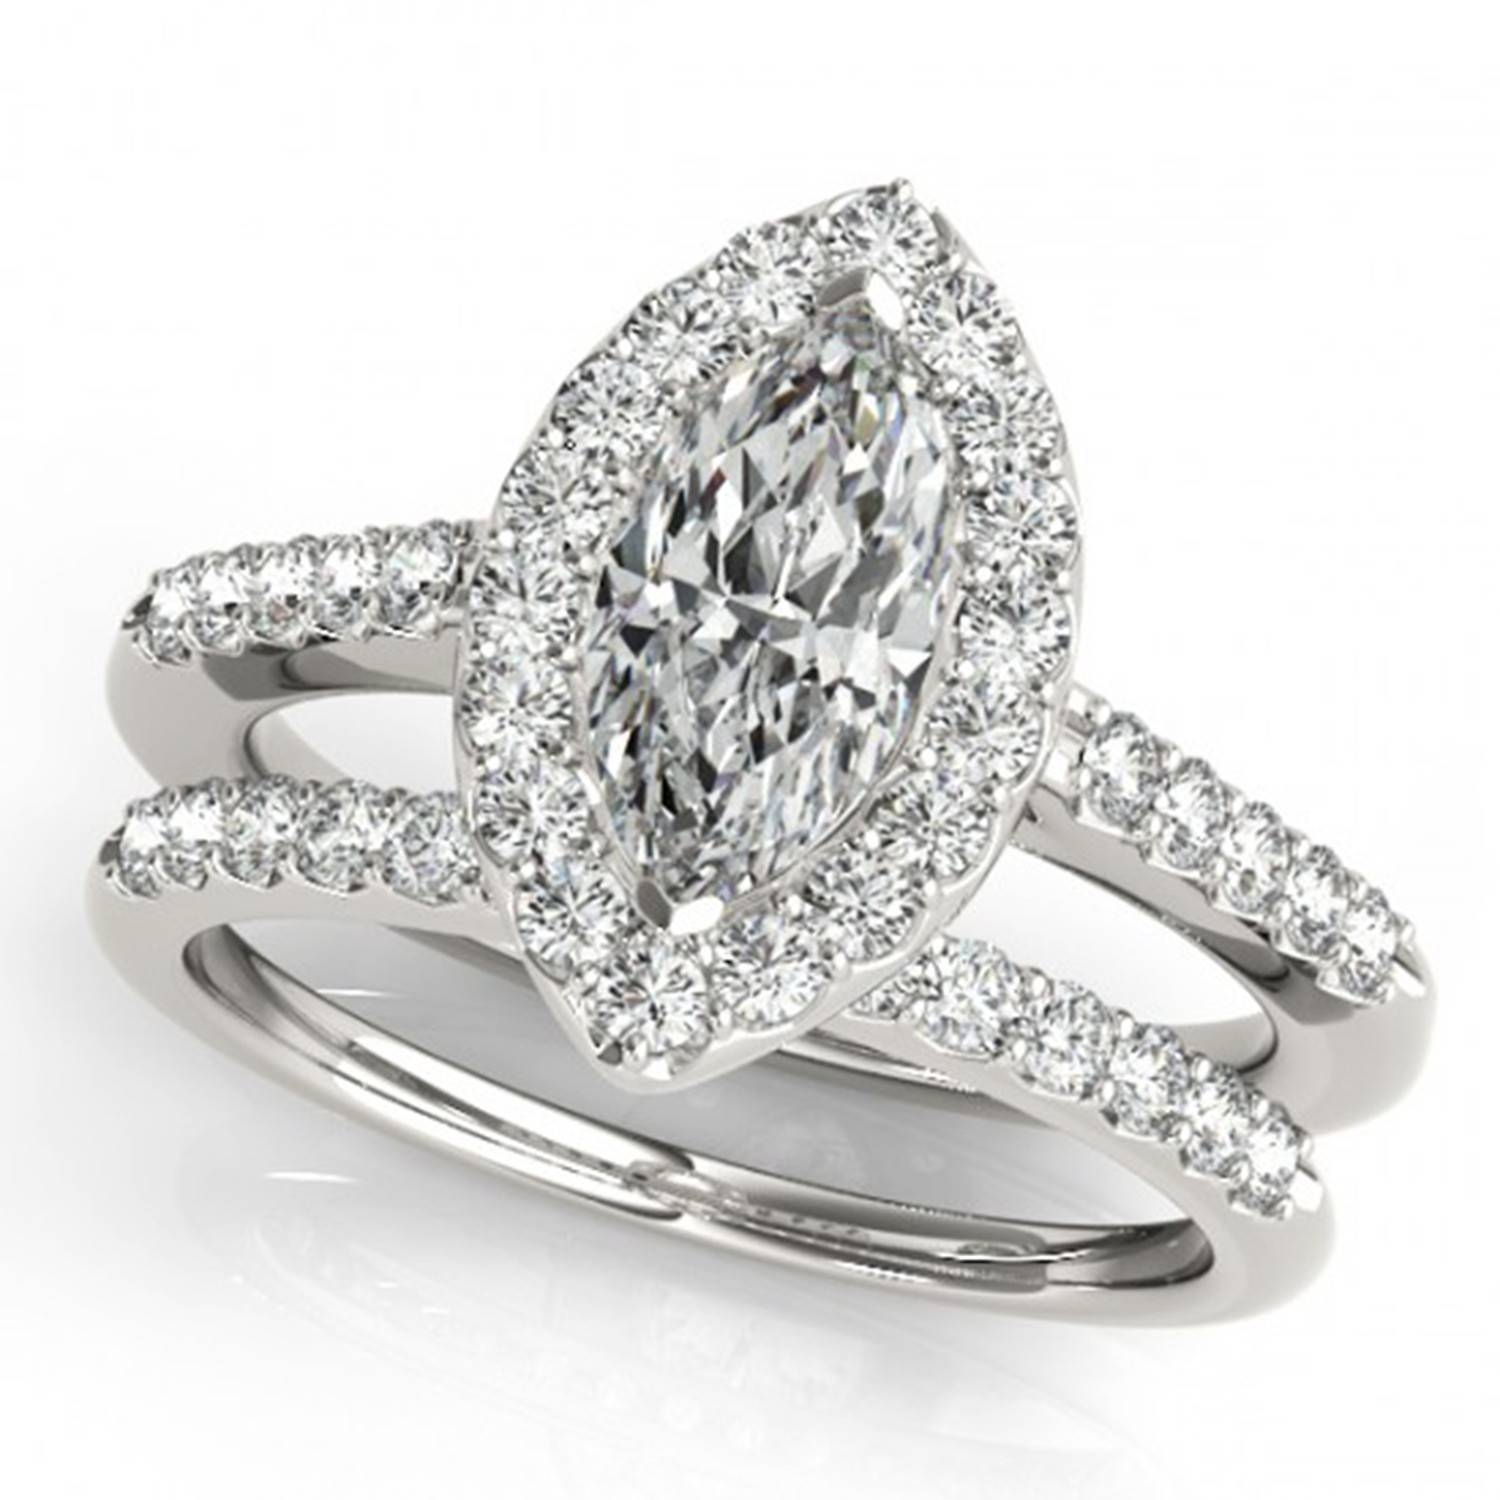 1/3 Carat Flat Sphere Marquise Diamond Sidestones Engagement Ring Within Flat Engagement Rings (View 4 of 15)